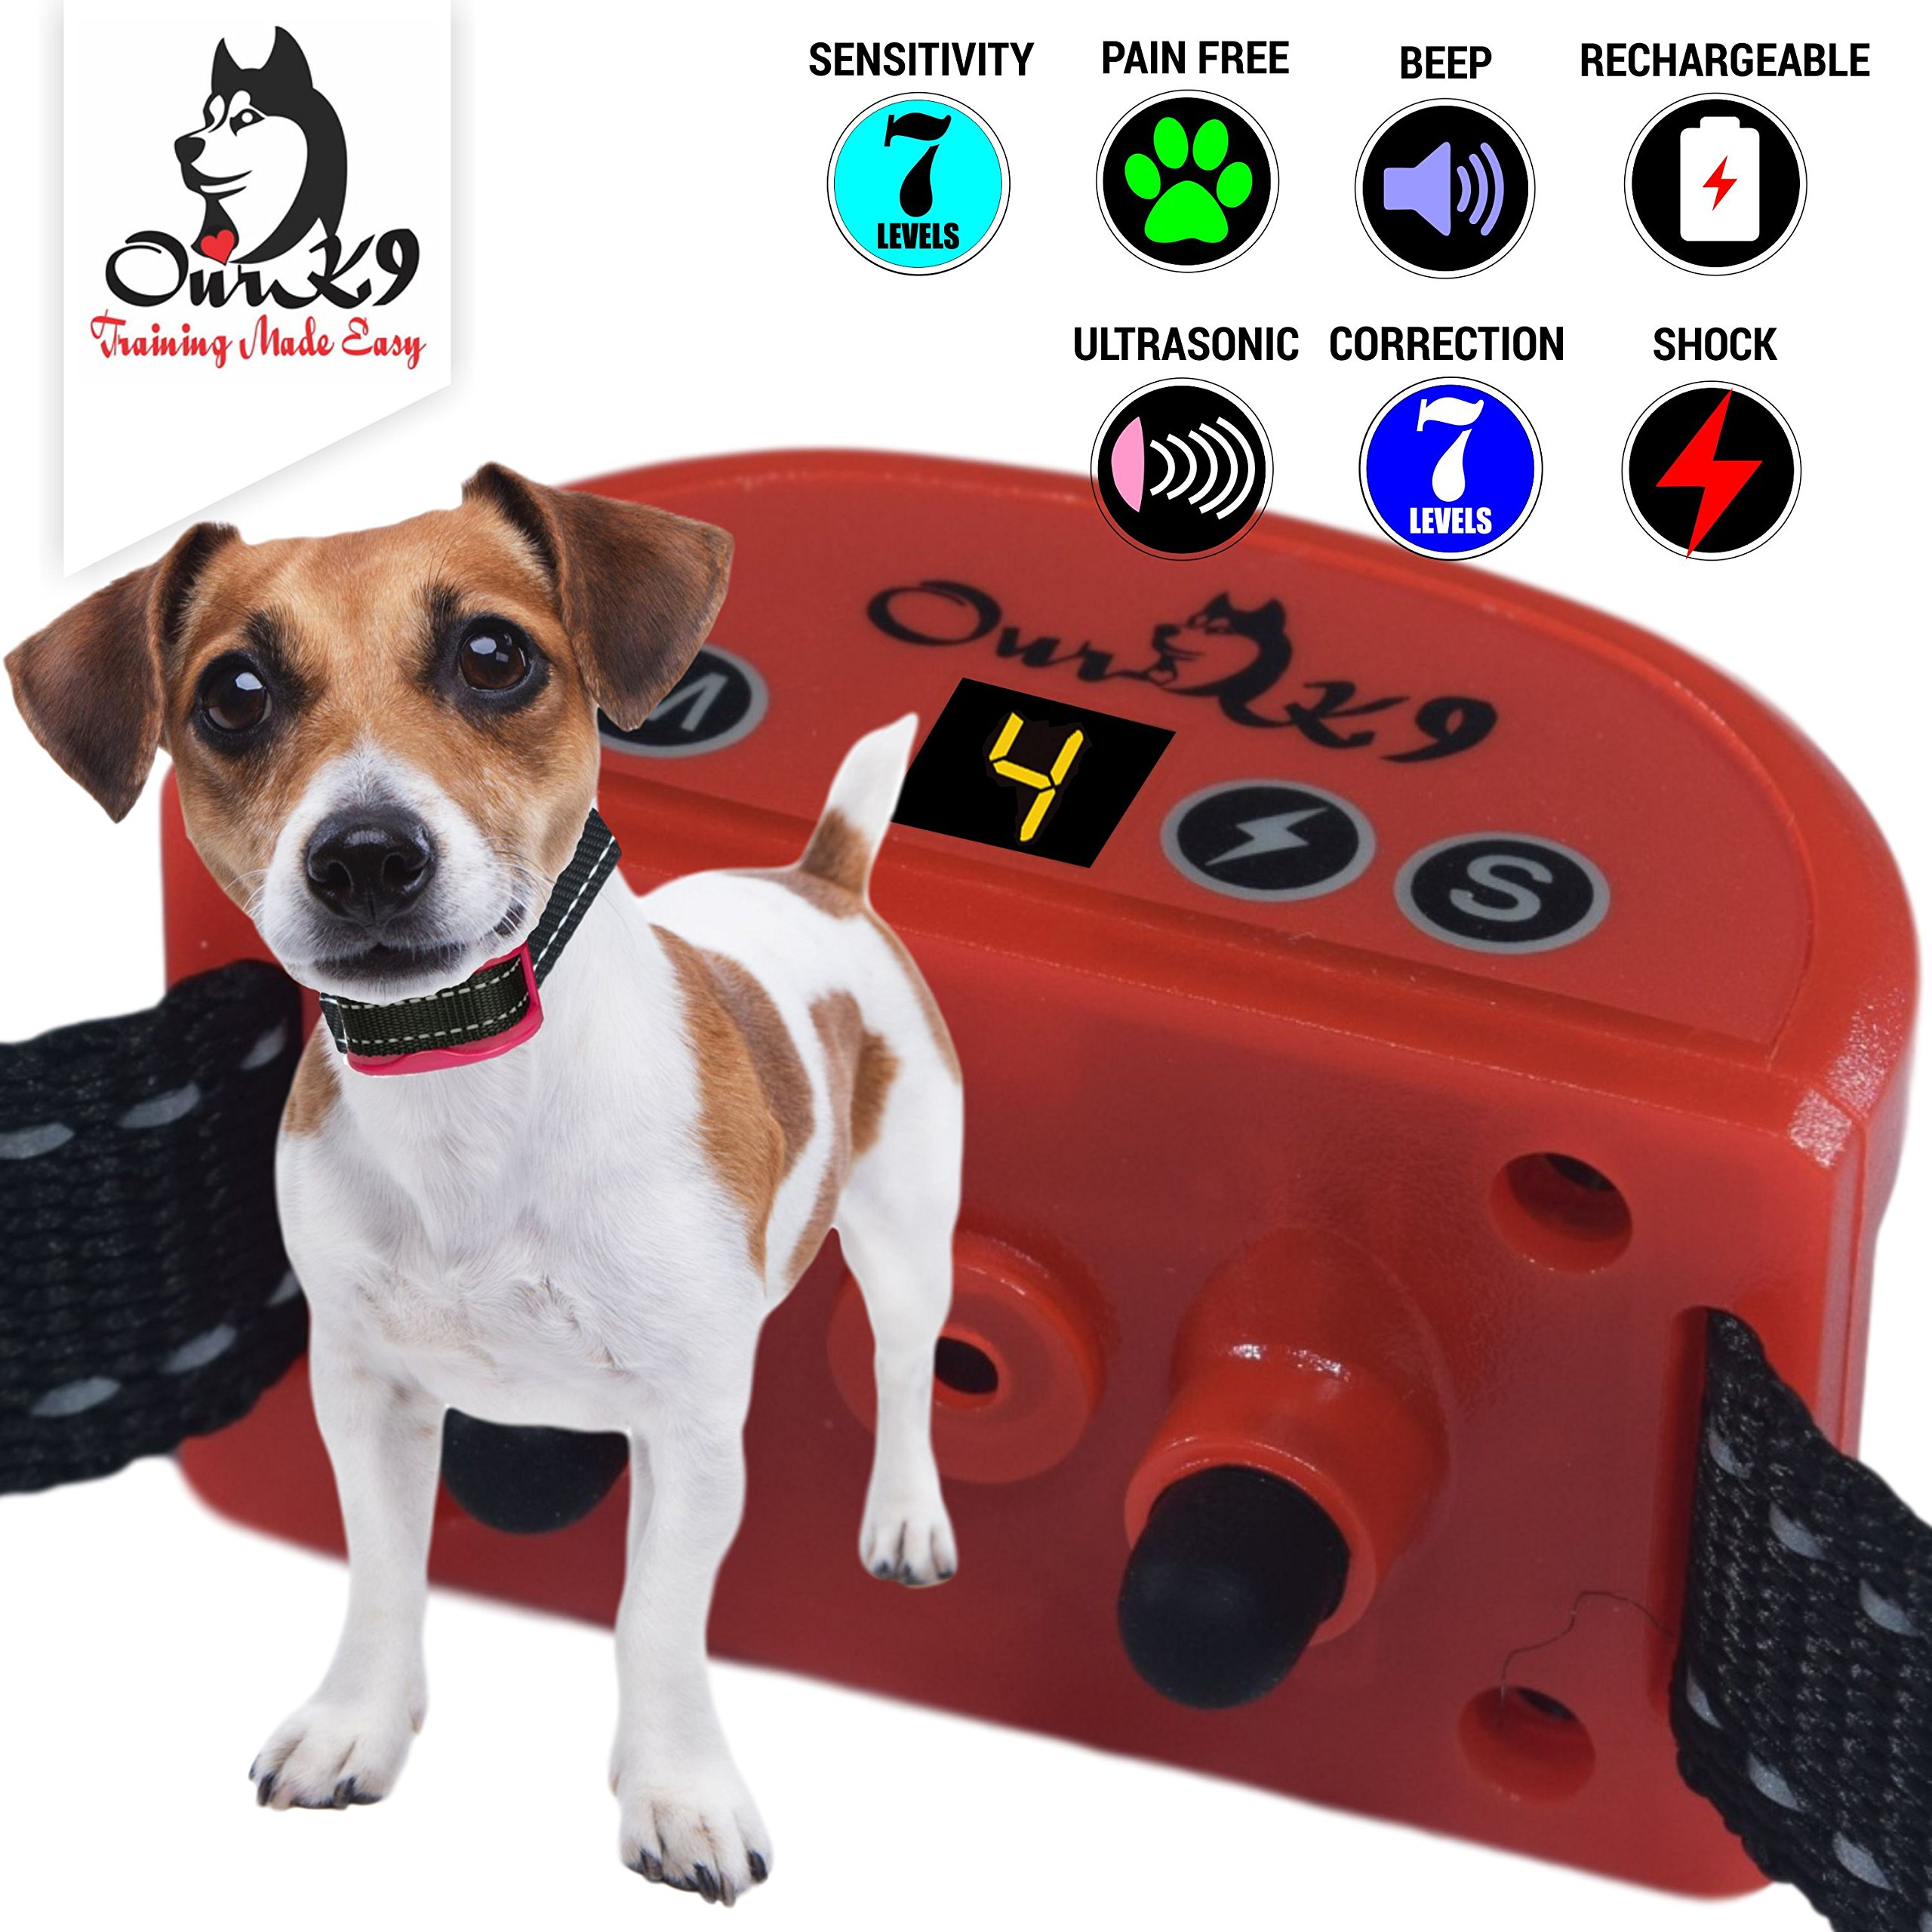 Our K9 Training Made Easy Worlds Safest Shock Collar 7 Levels of Sensitivity and Shock with 5 Levels of Sound and Ultrasonic Plus Safety Protocols (Carmine)